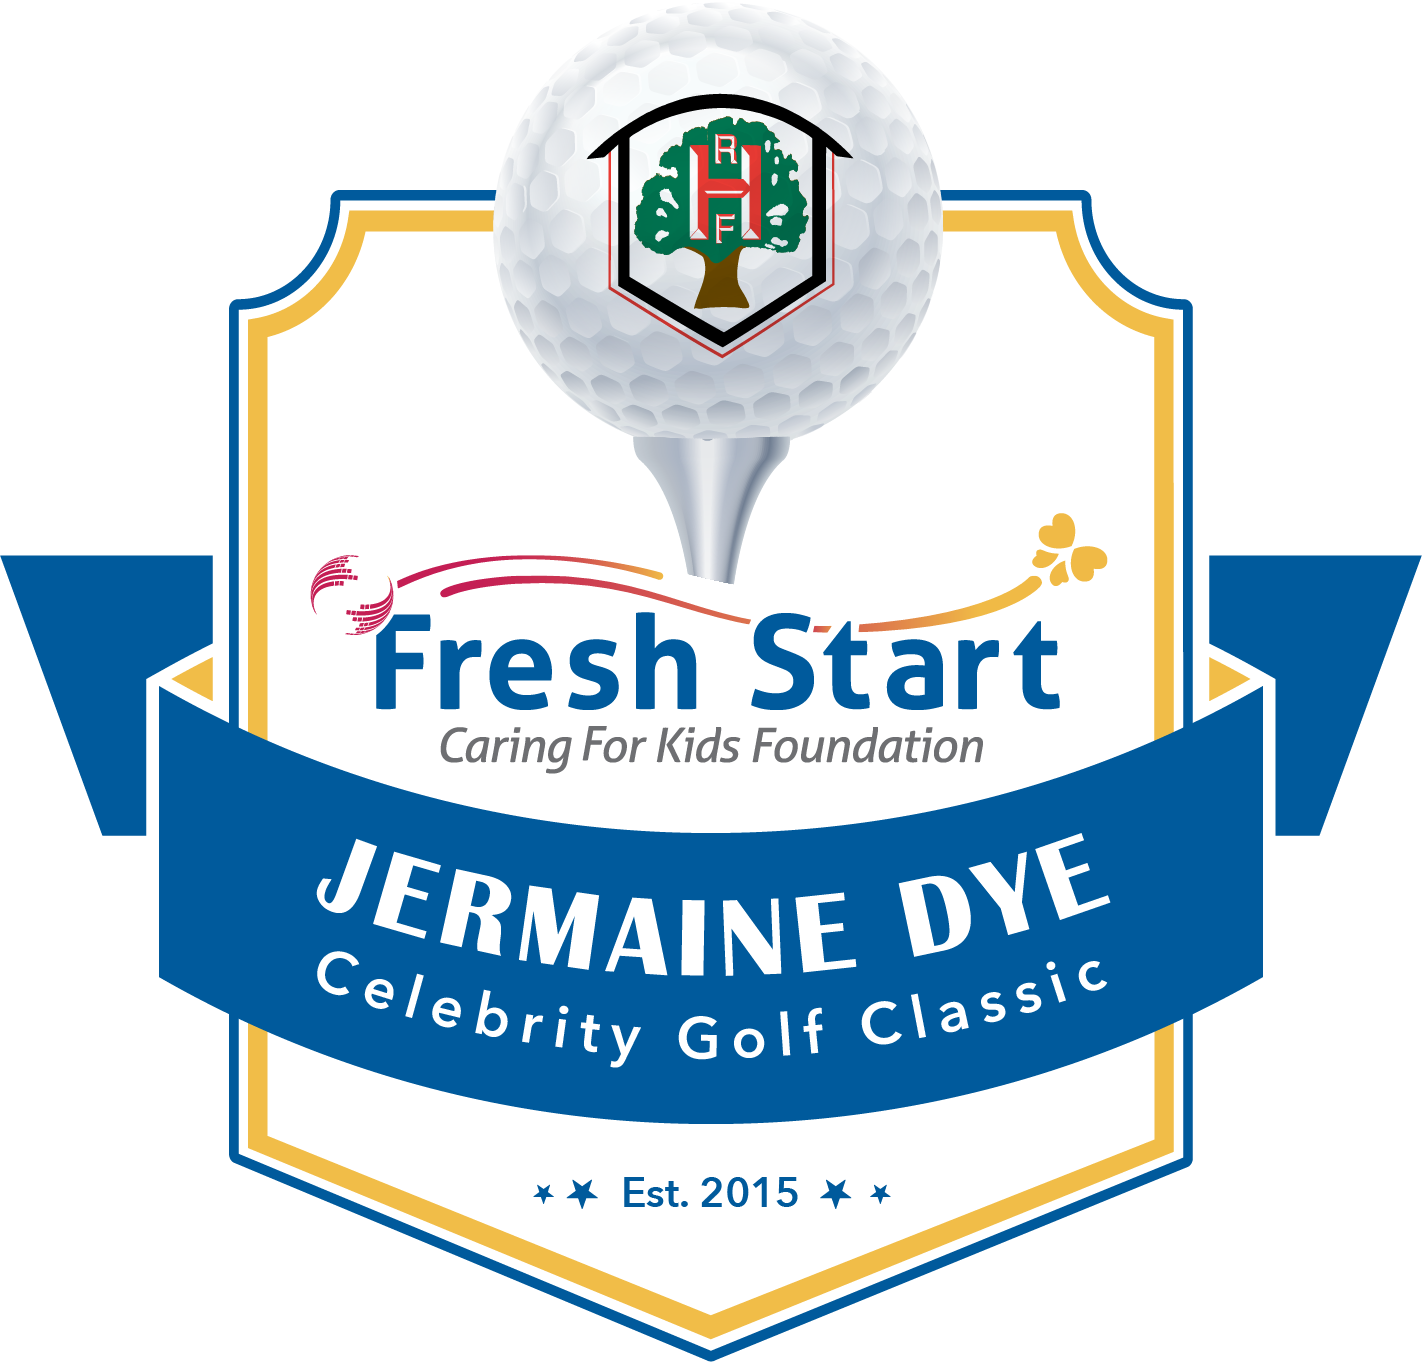 Save The Date: May 17-18 2020 - Fresh Start Caring For Kids Foundation and Jermaine Dye is proud to name Rich Harvest Farms as the new home for the 6th Annual Celebrity Golf Classic to benefit Fresh Start Caring For Kids Foundation.